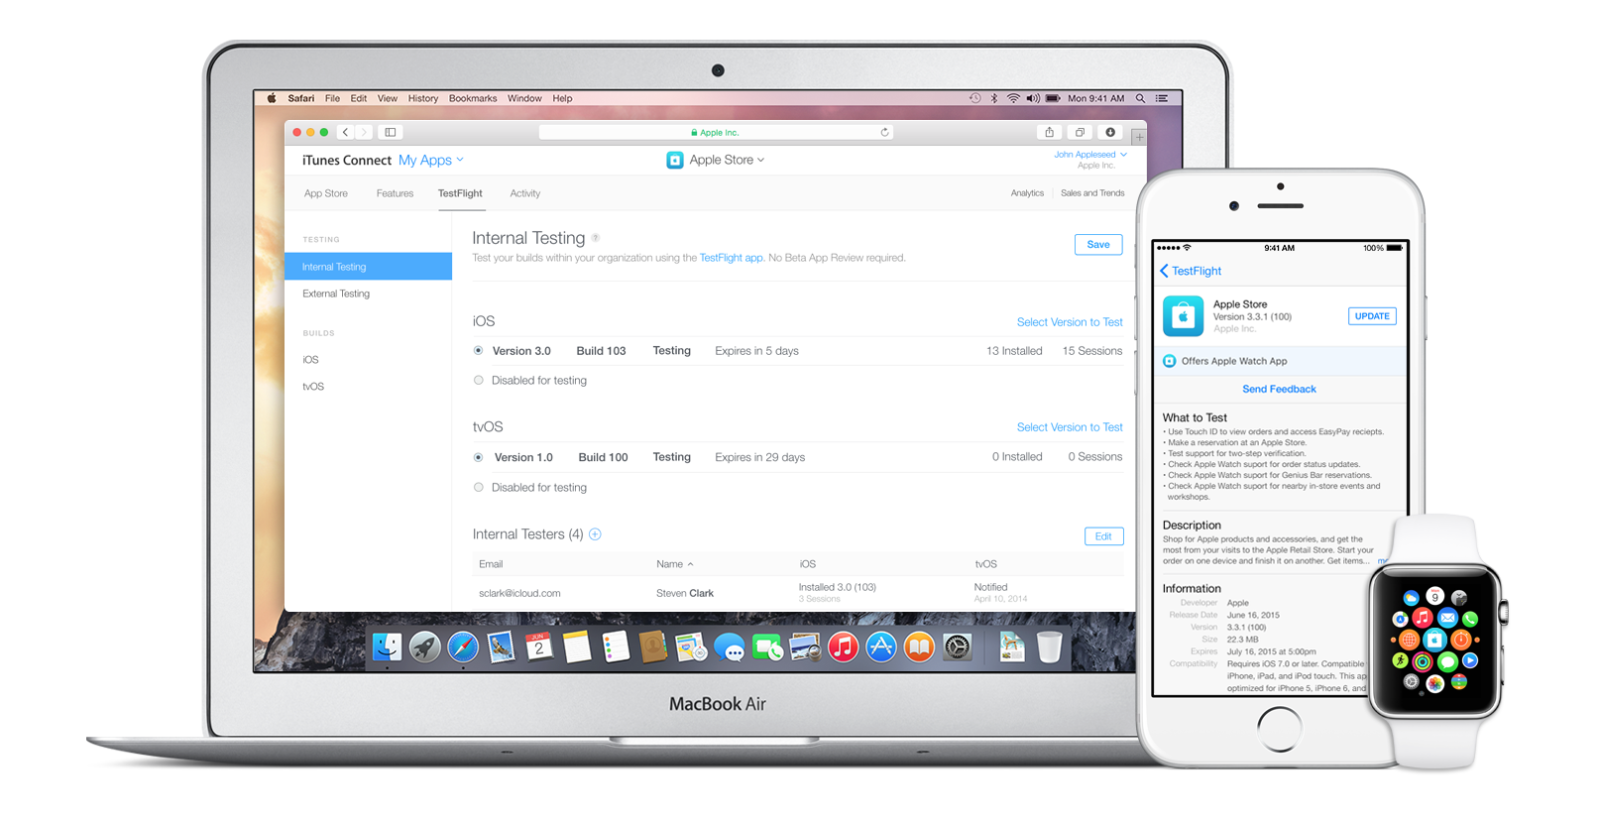 Apple expands TestFlight tester limit to 10,000 users apple-expands-testflight-tester-limit-to-10000-users